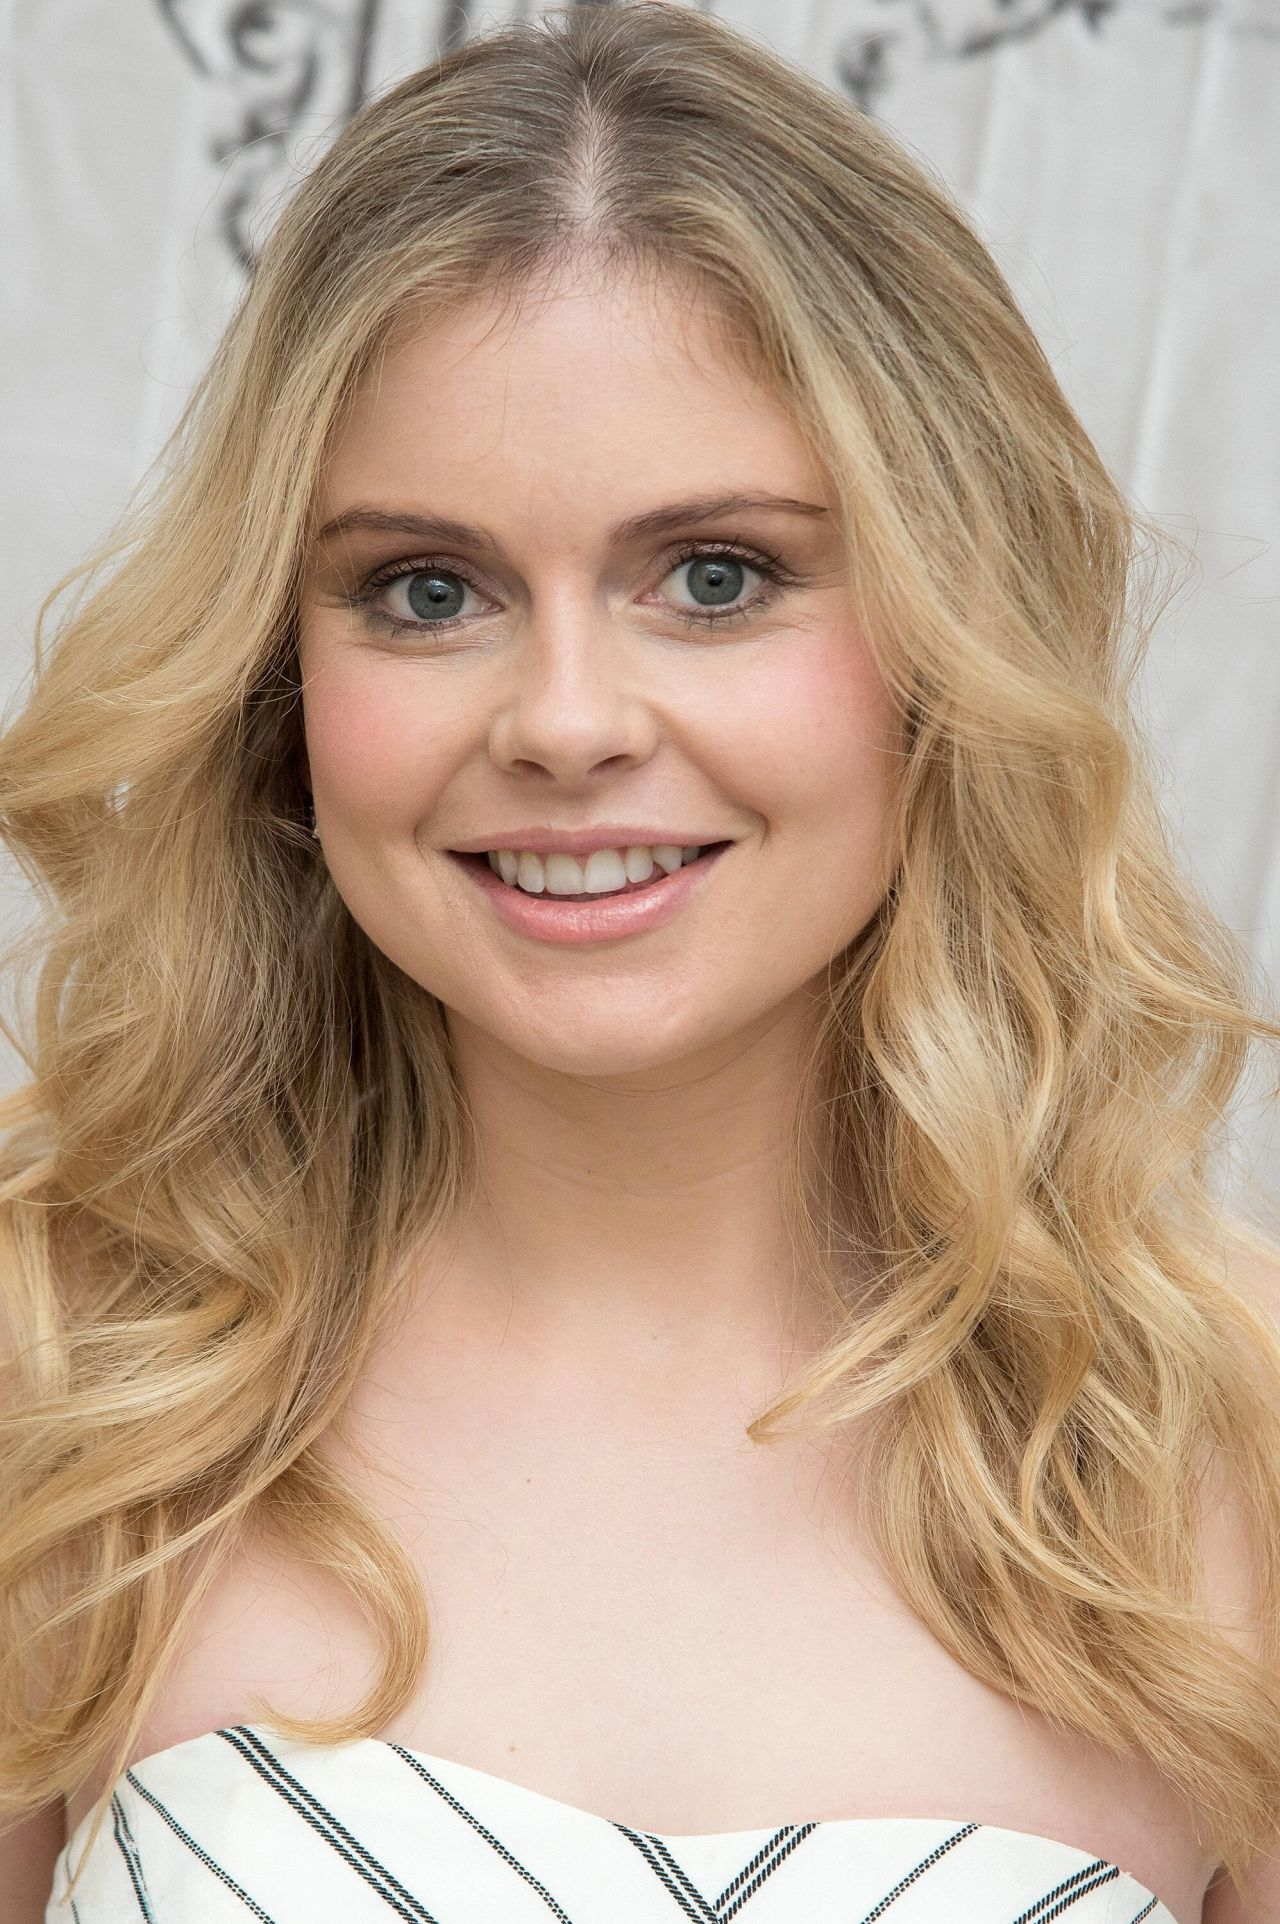 28 wallpapers rose mciver | fbemot